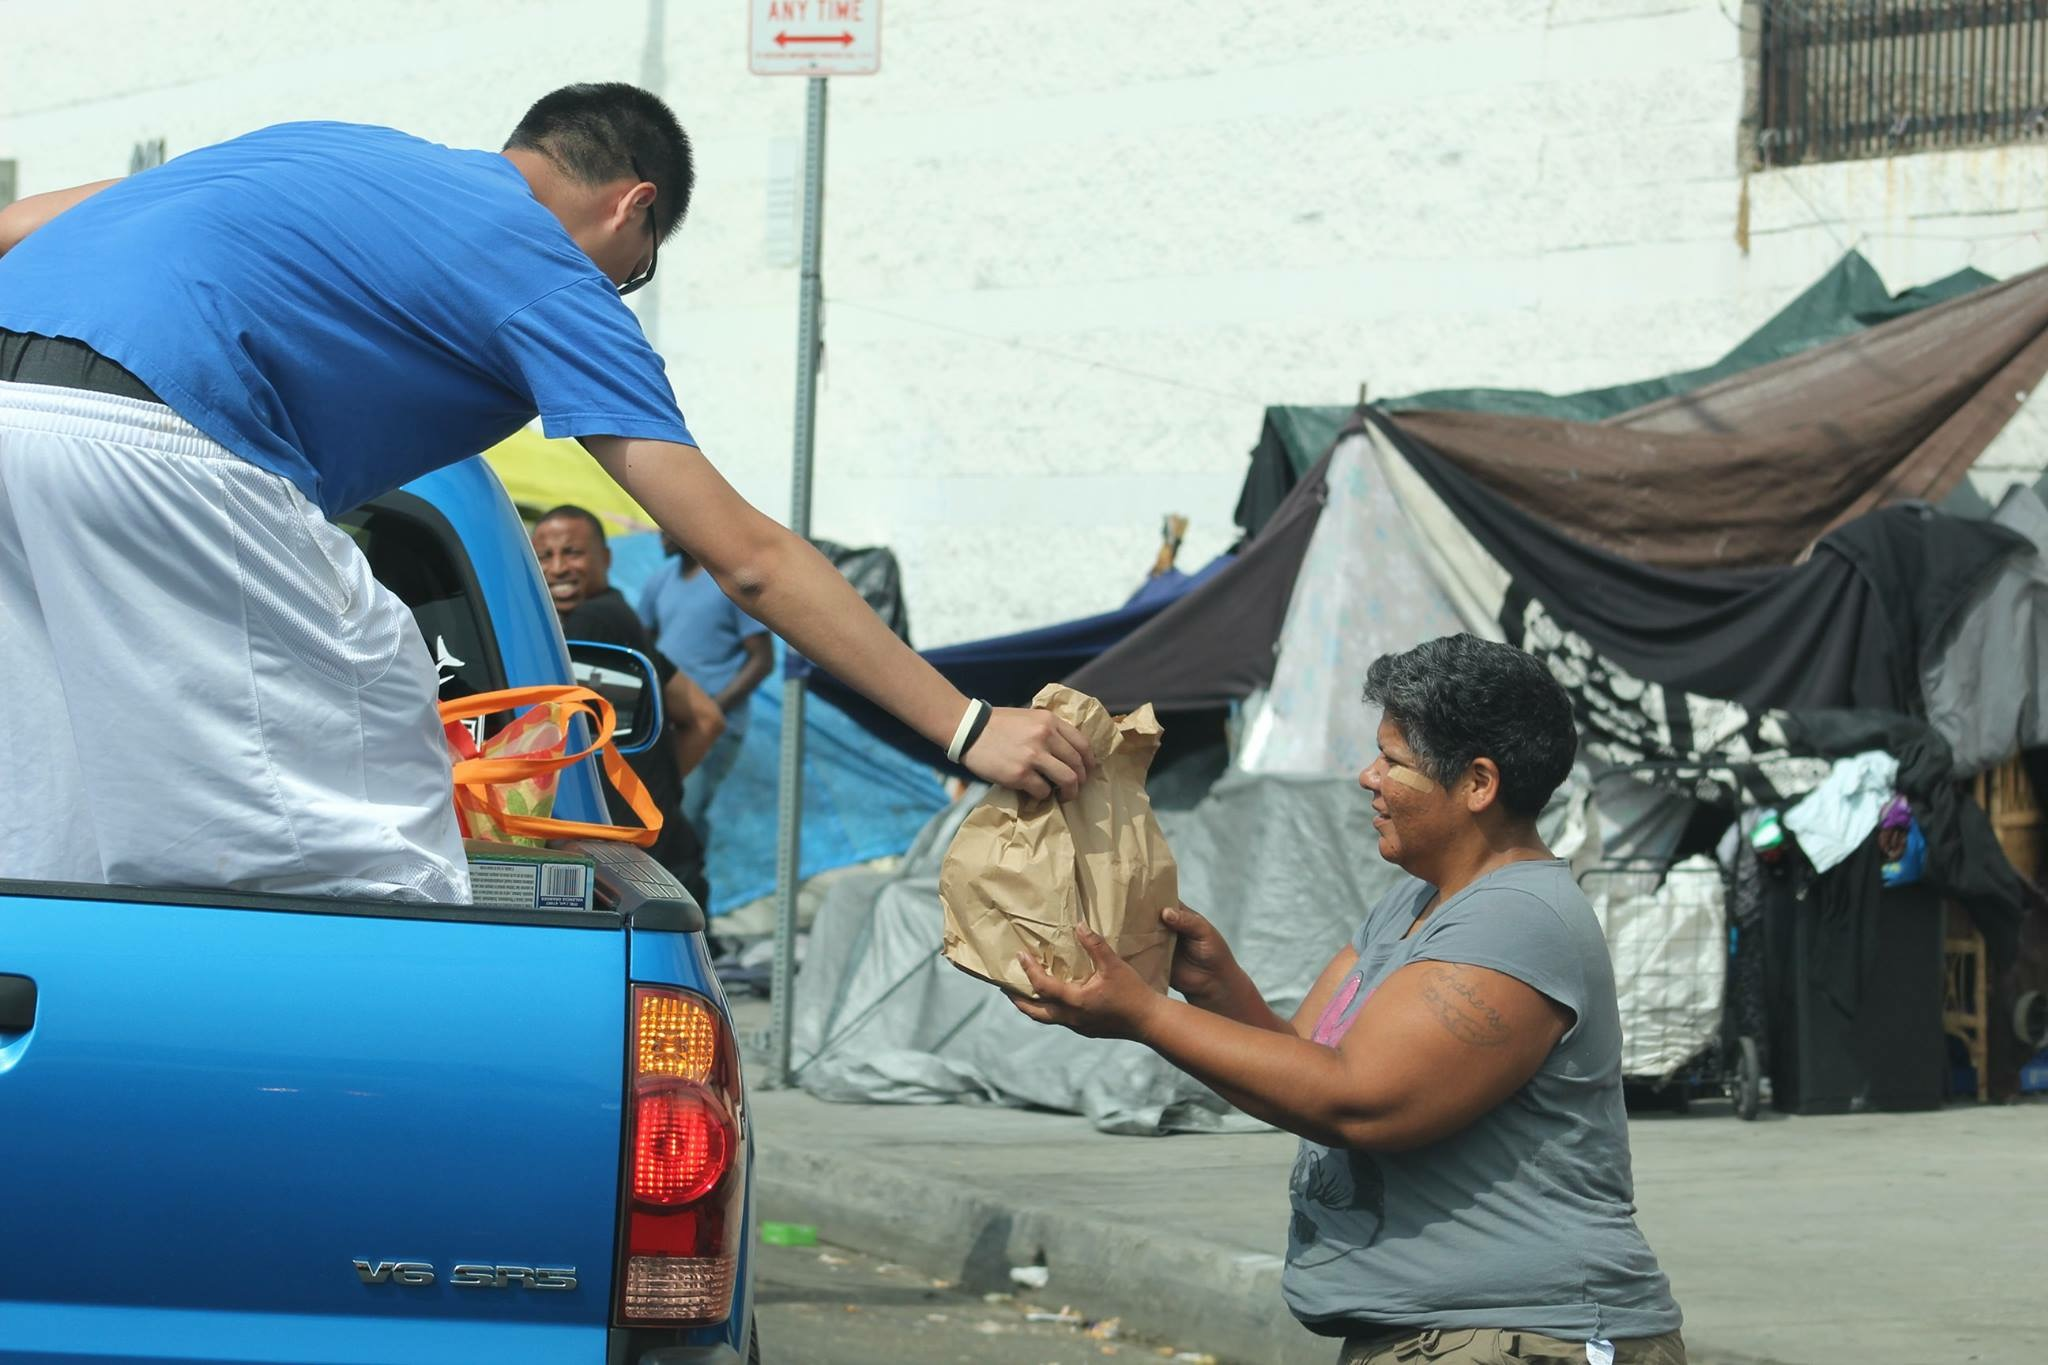 giving out bags